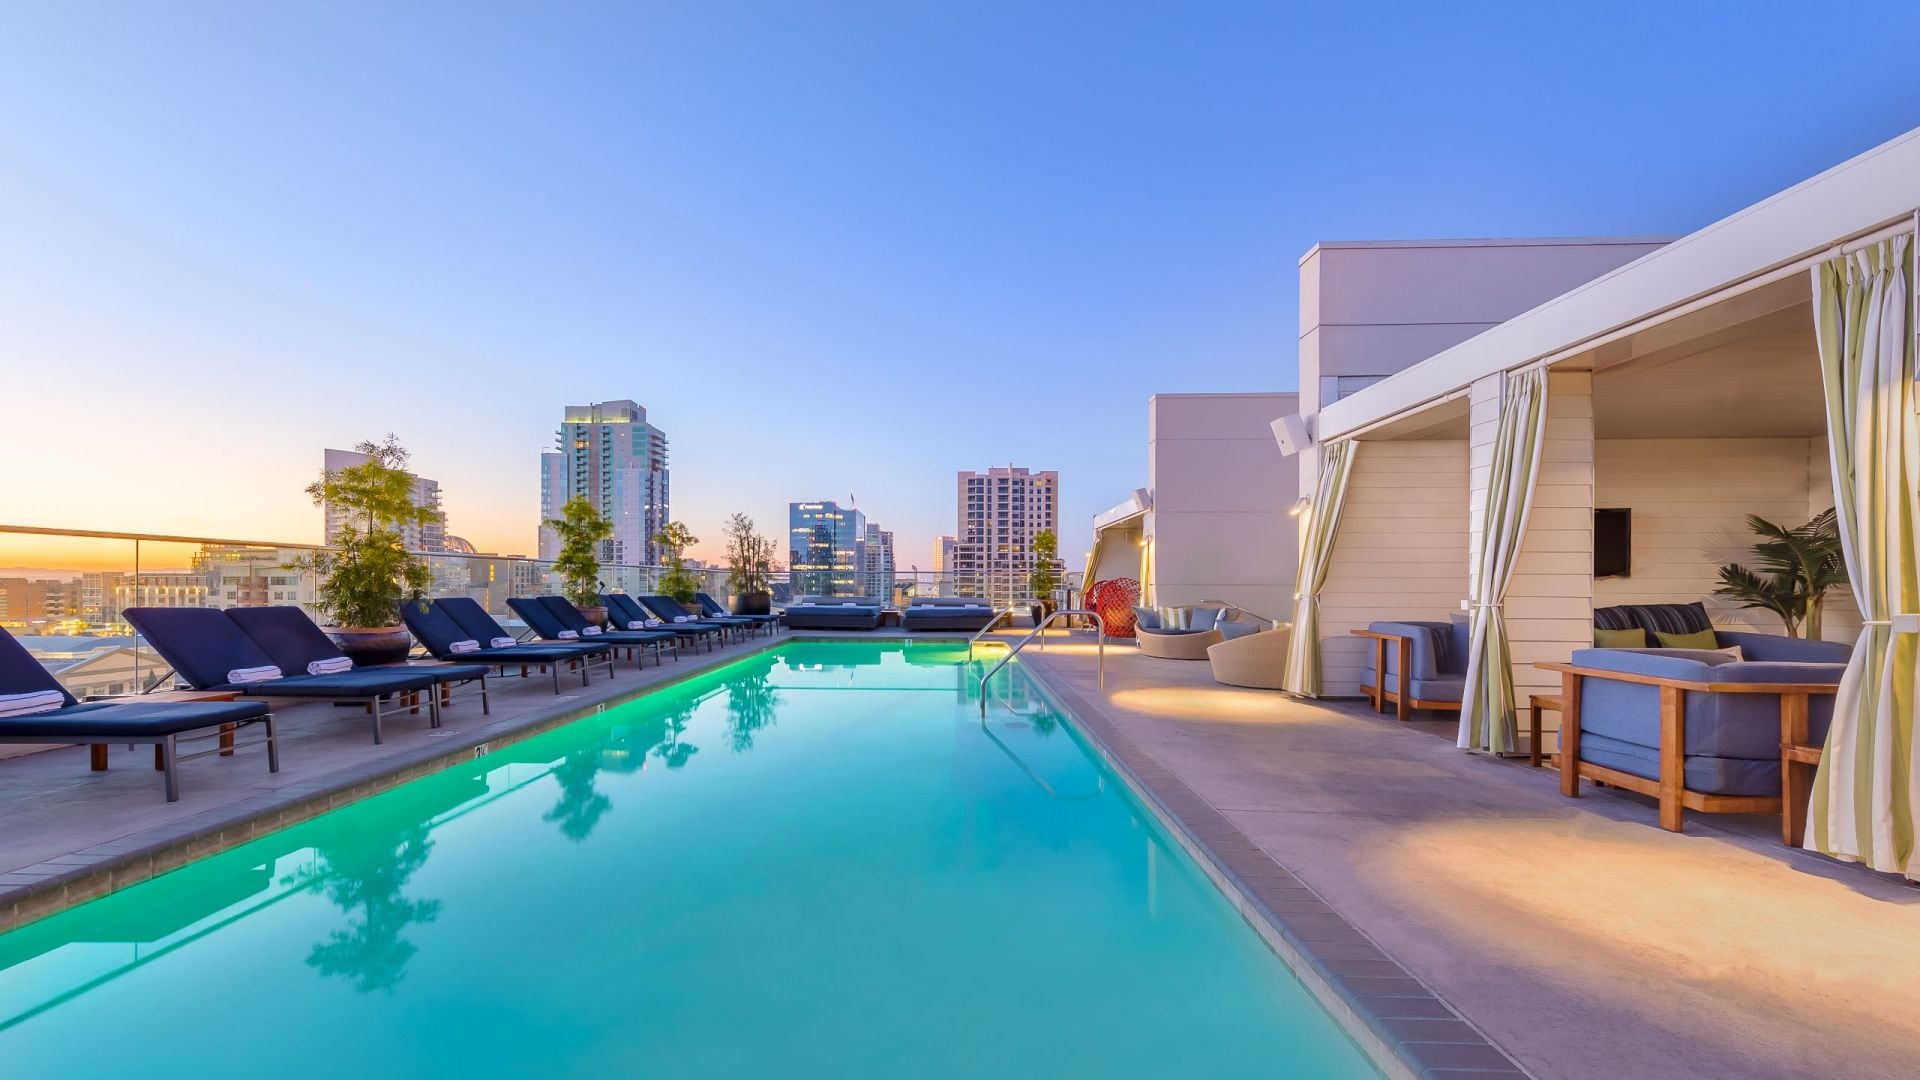 Andaz San Diego rooftop pool